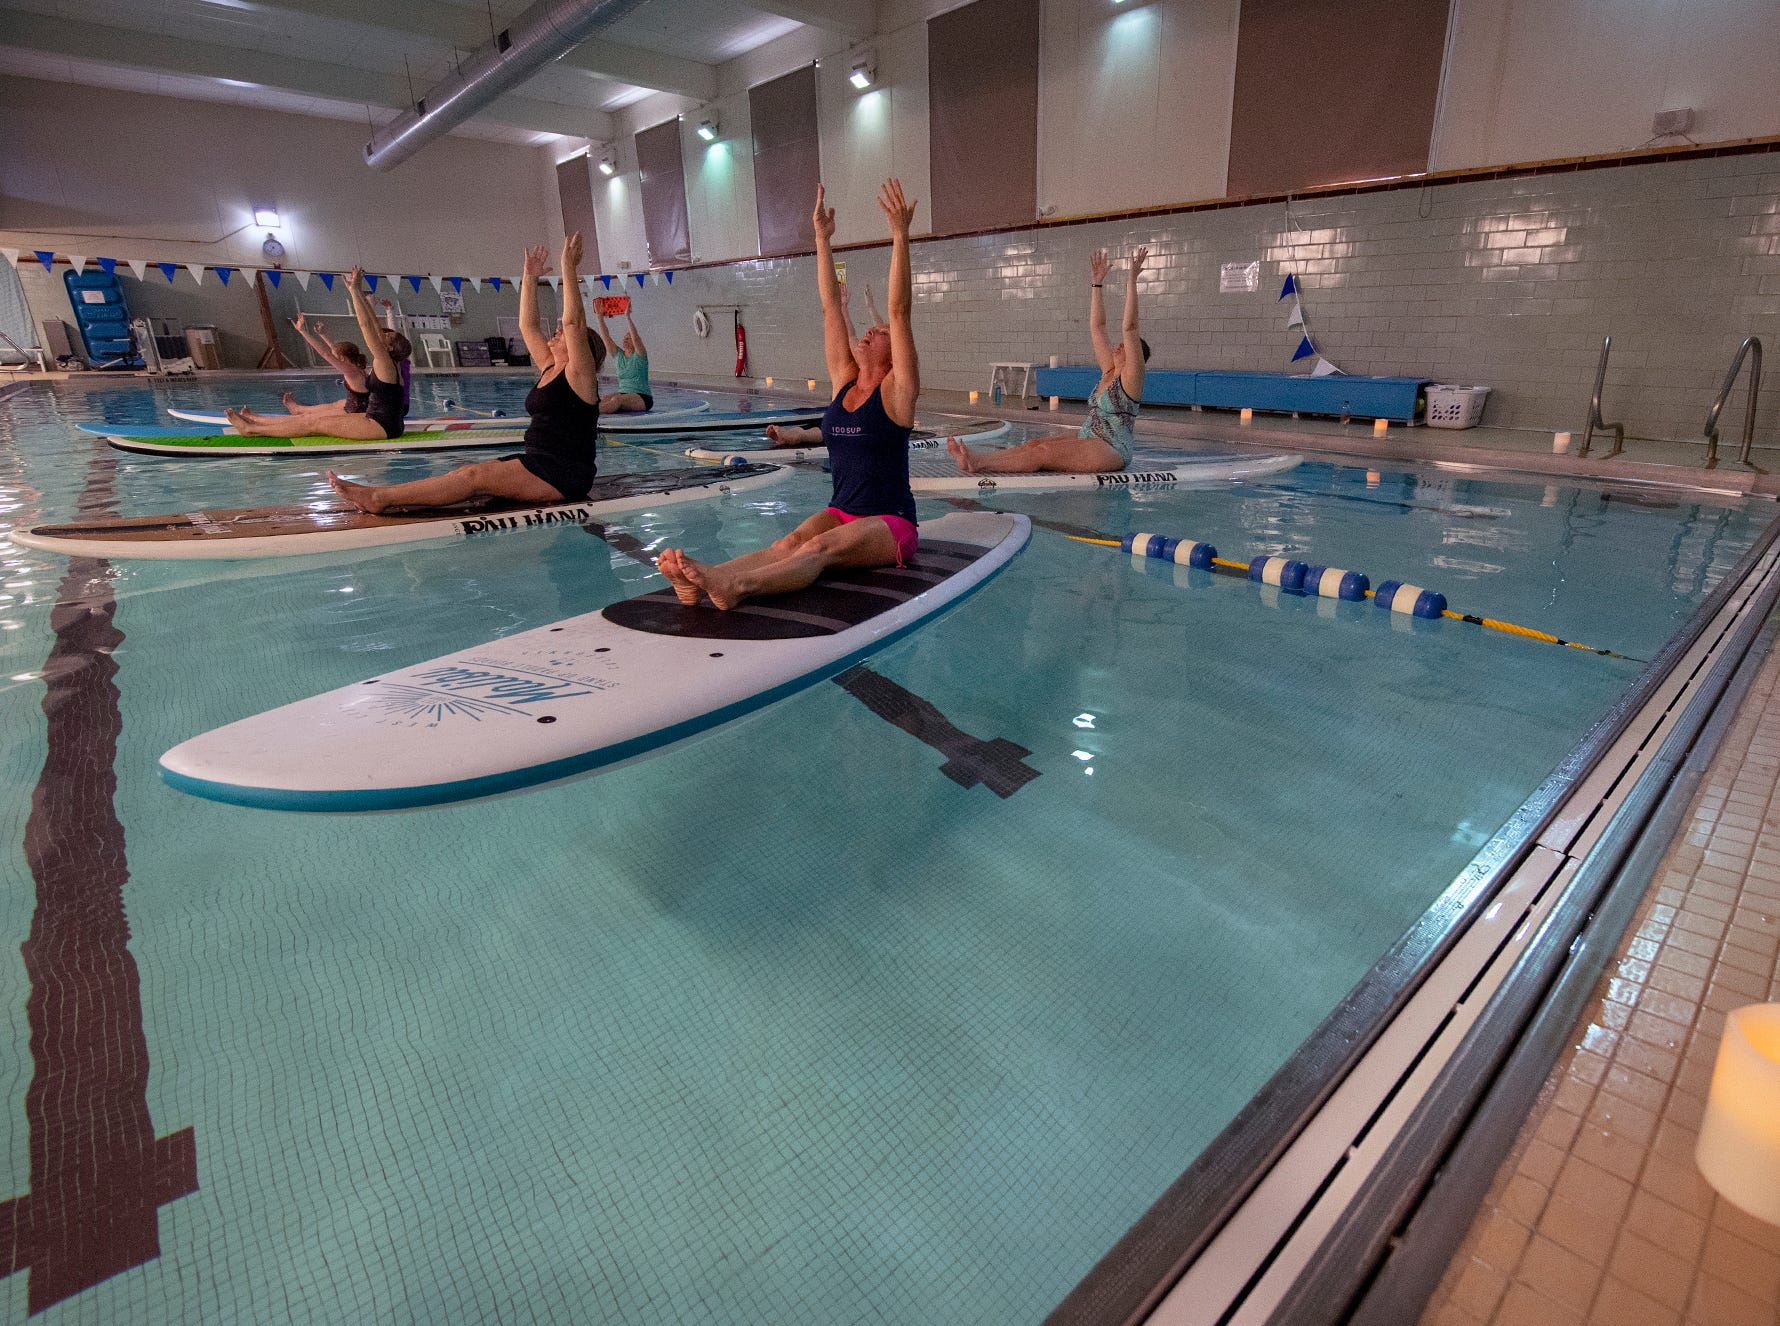 The YWCA York is offering a Paddle Board Yoga Class in their pool for the first time. Shank's Mare provided the boards. The class is offered on the open water in warmer weather.